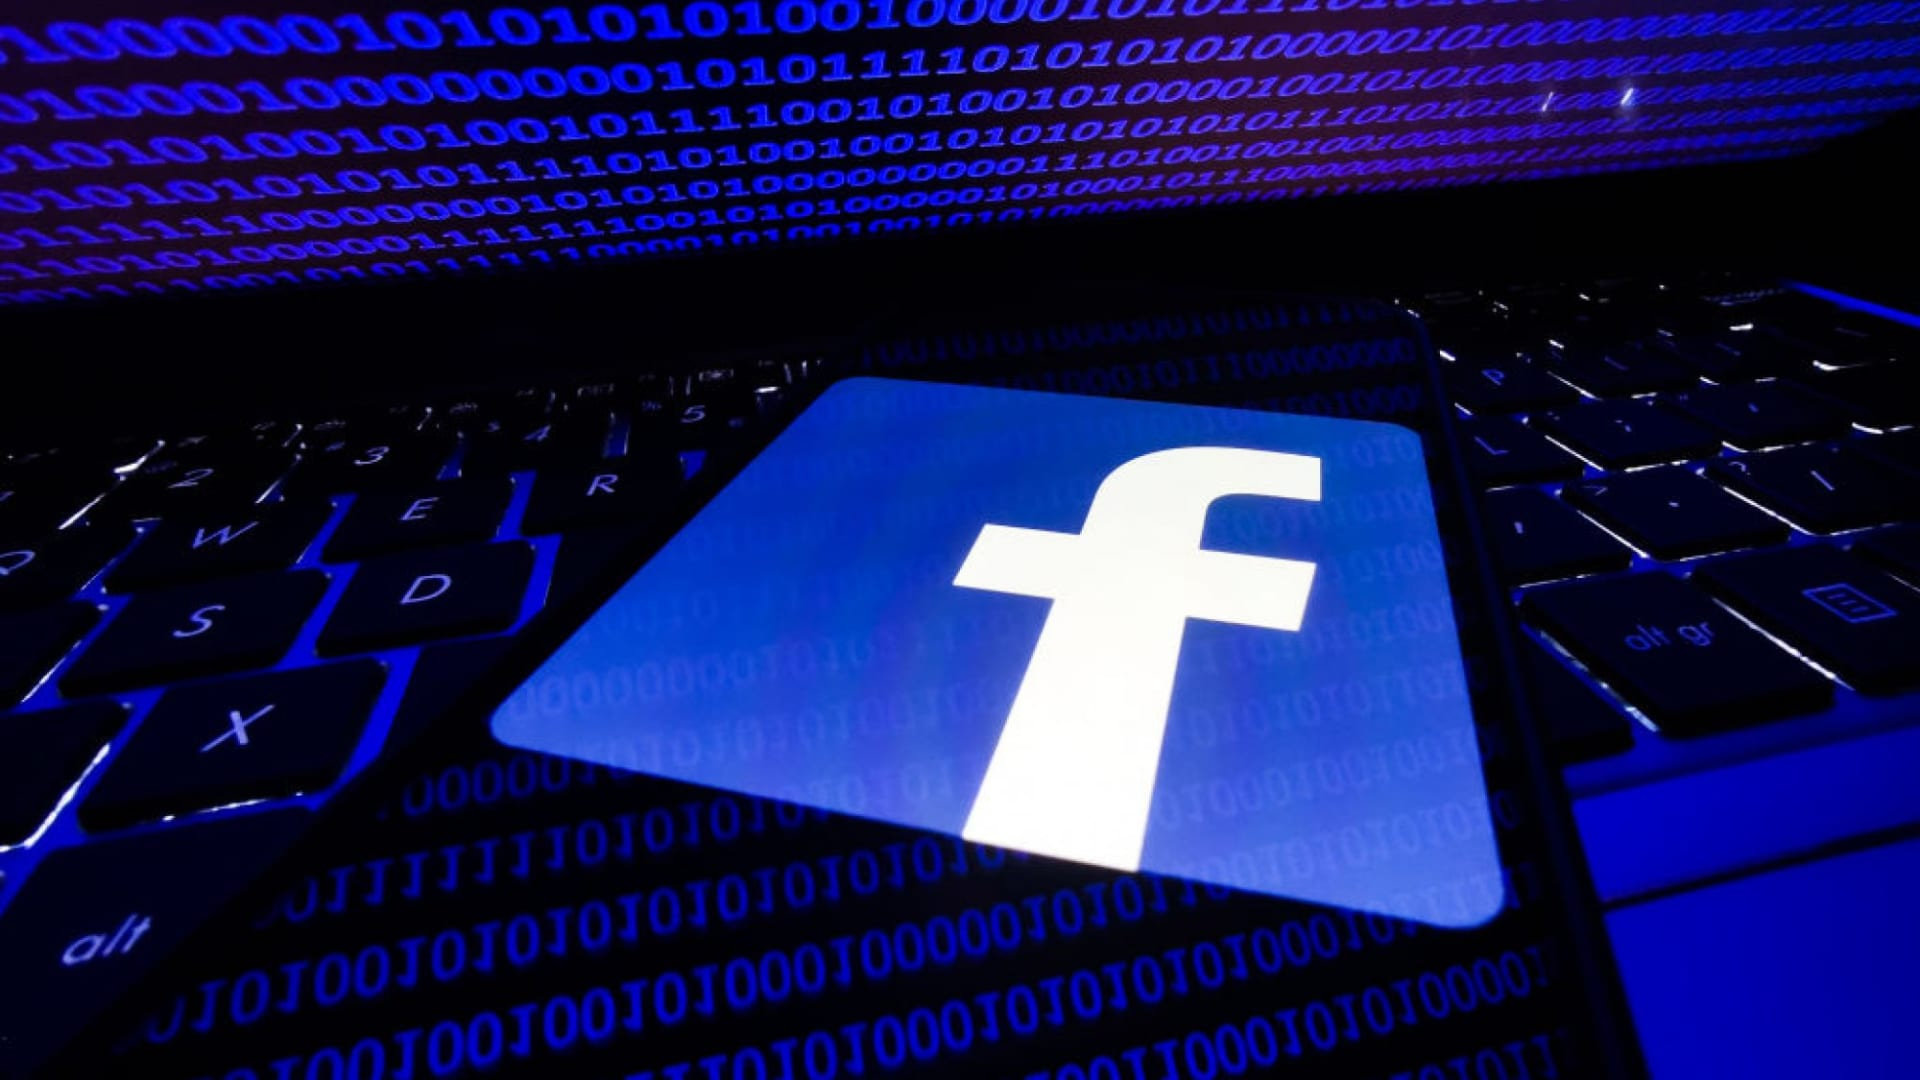 Facebook's Metaverse Dream Is a Conference Room? It Sounds More Like a Nightmare